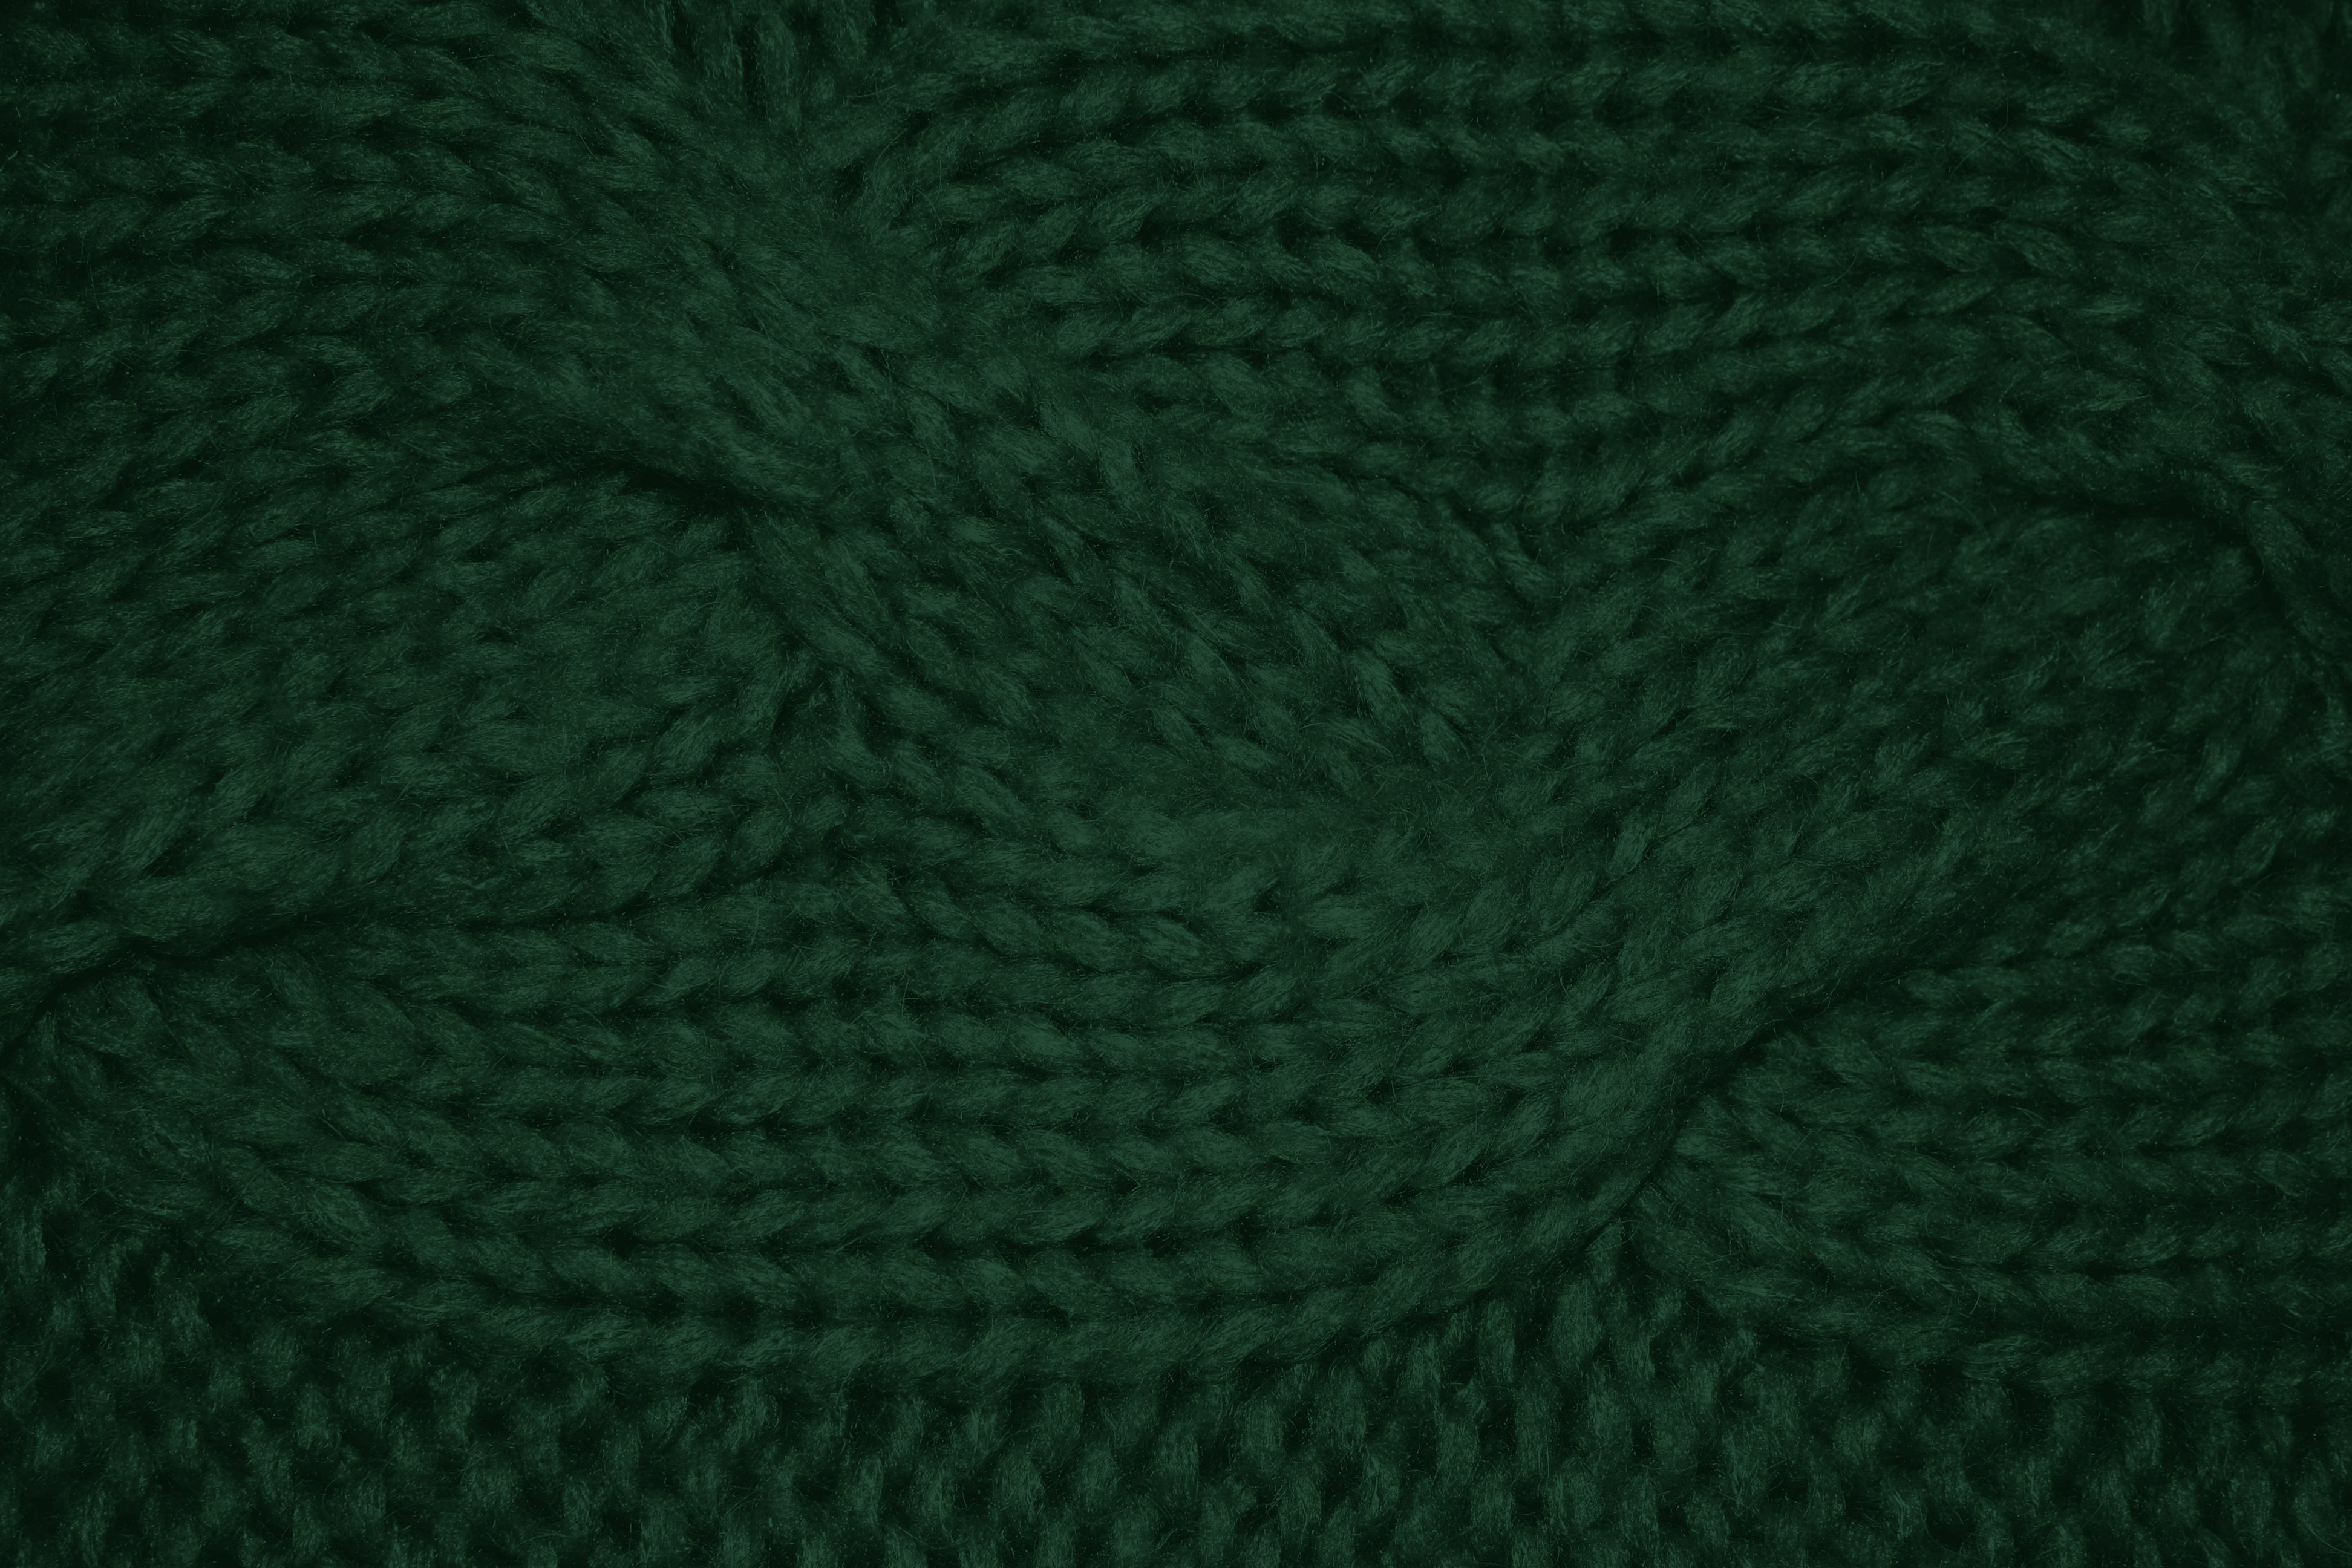 Forest Green Cable Knit Pattern Texture Picture   Free Photograph ...